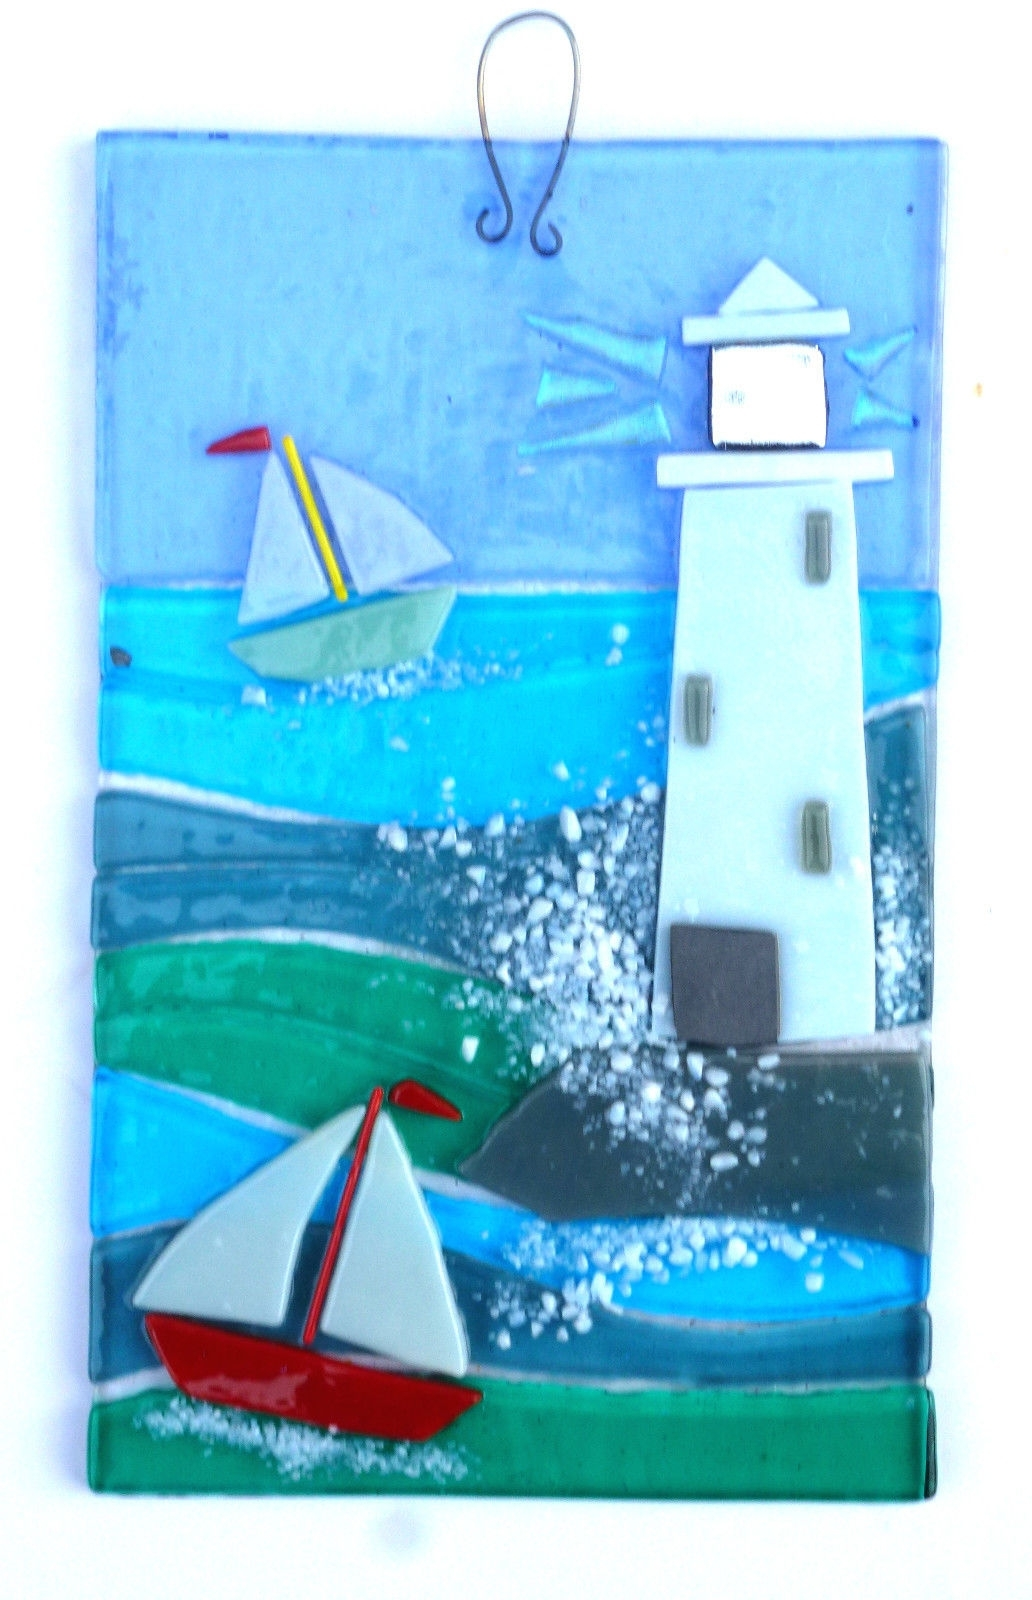 2018 Lighthouse, Original Fused Glass Wall Art In Pottery, Porcelain Pertaining To Kiln Fused Glass Wall Art (View 1 of 15)